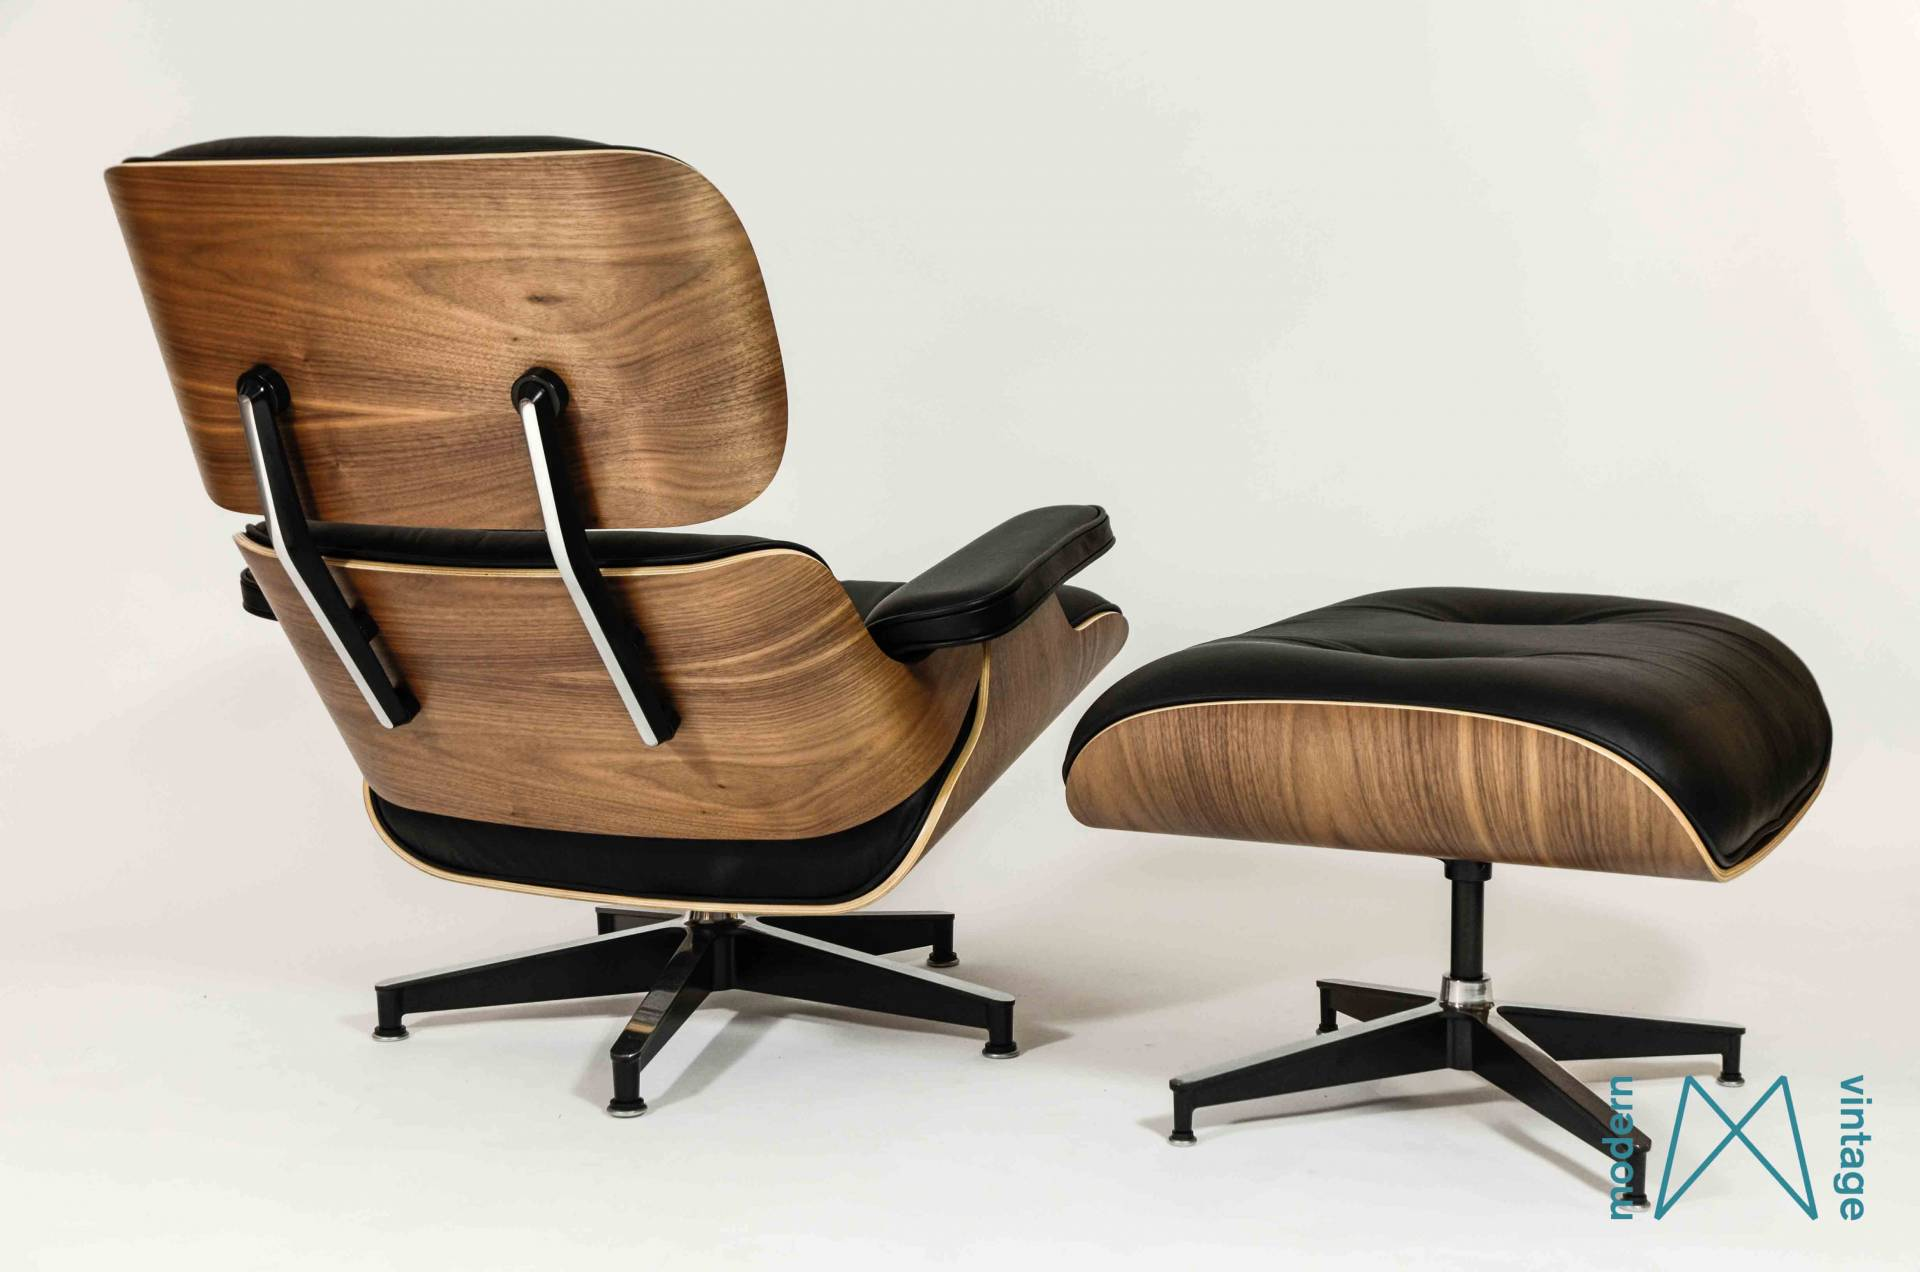 herman miller lounge chair. Eames Herman Miller Lounge Chair Walnut XL · Home G